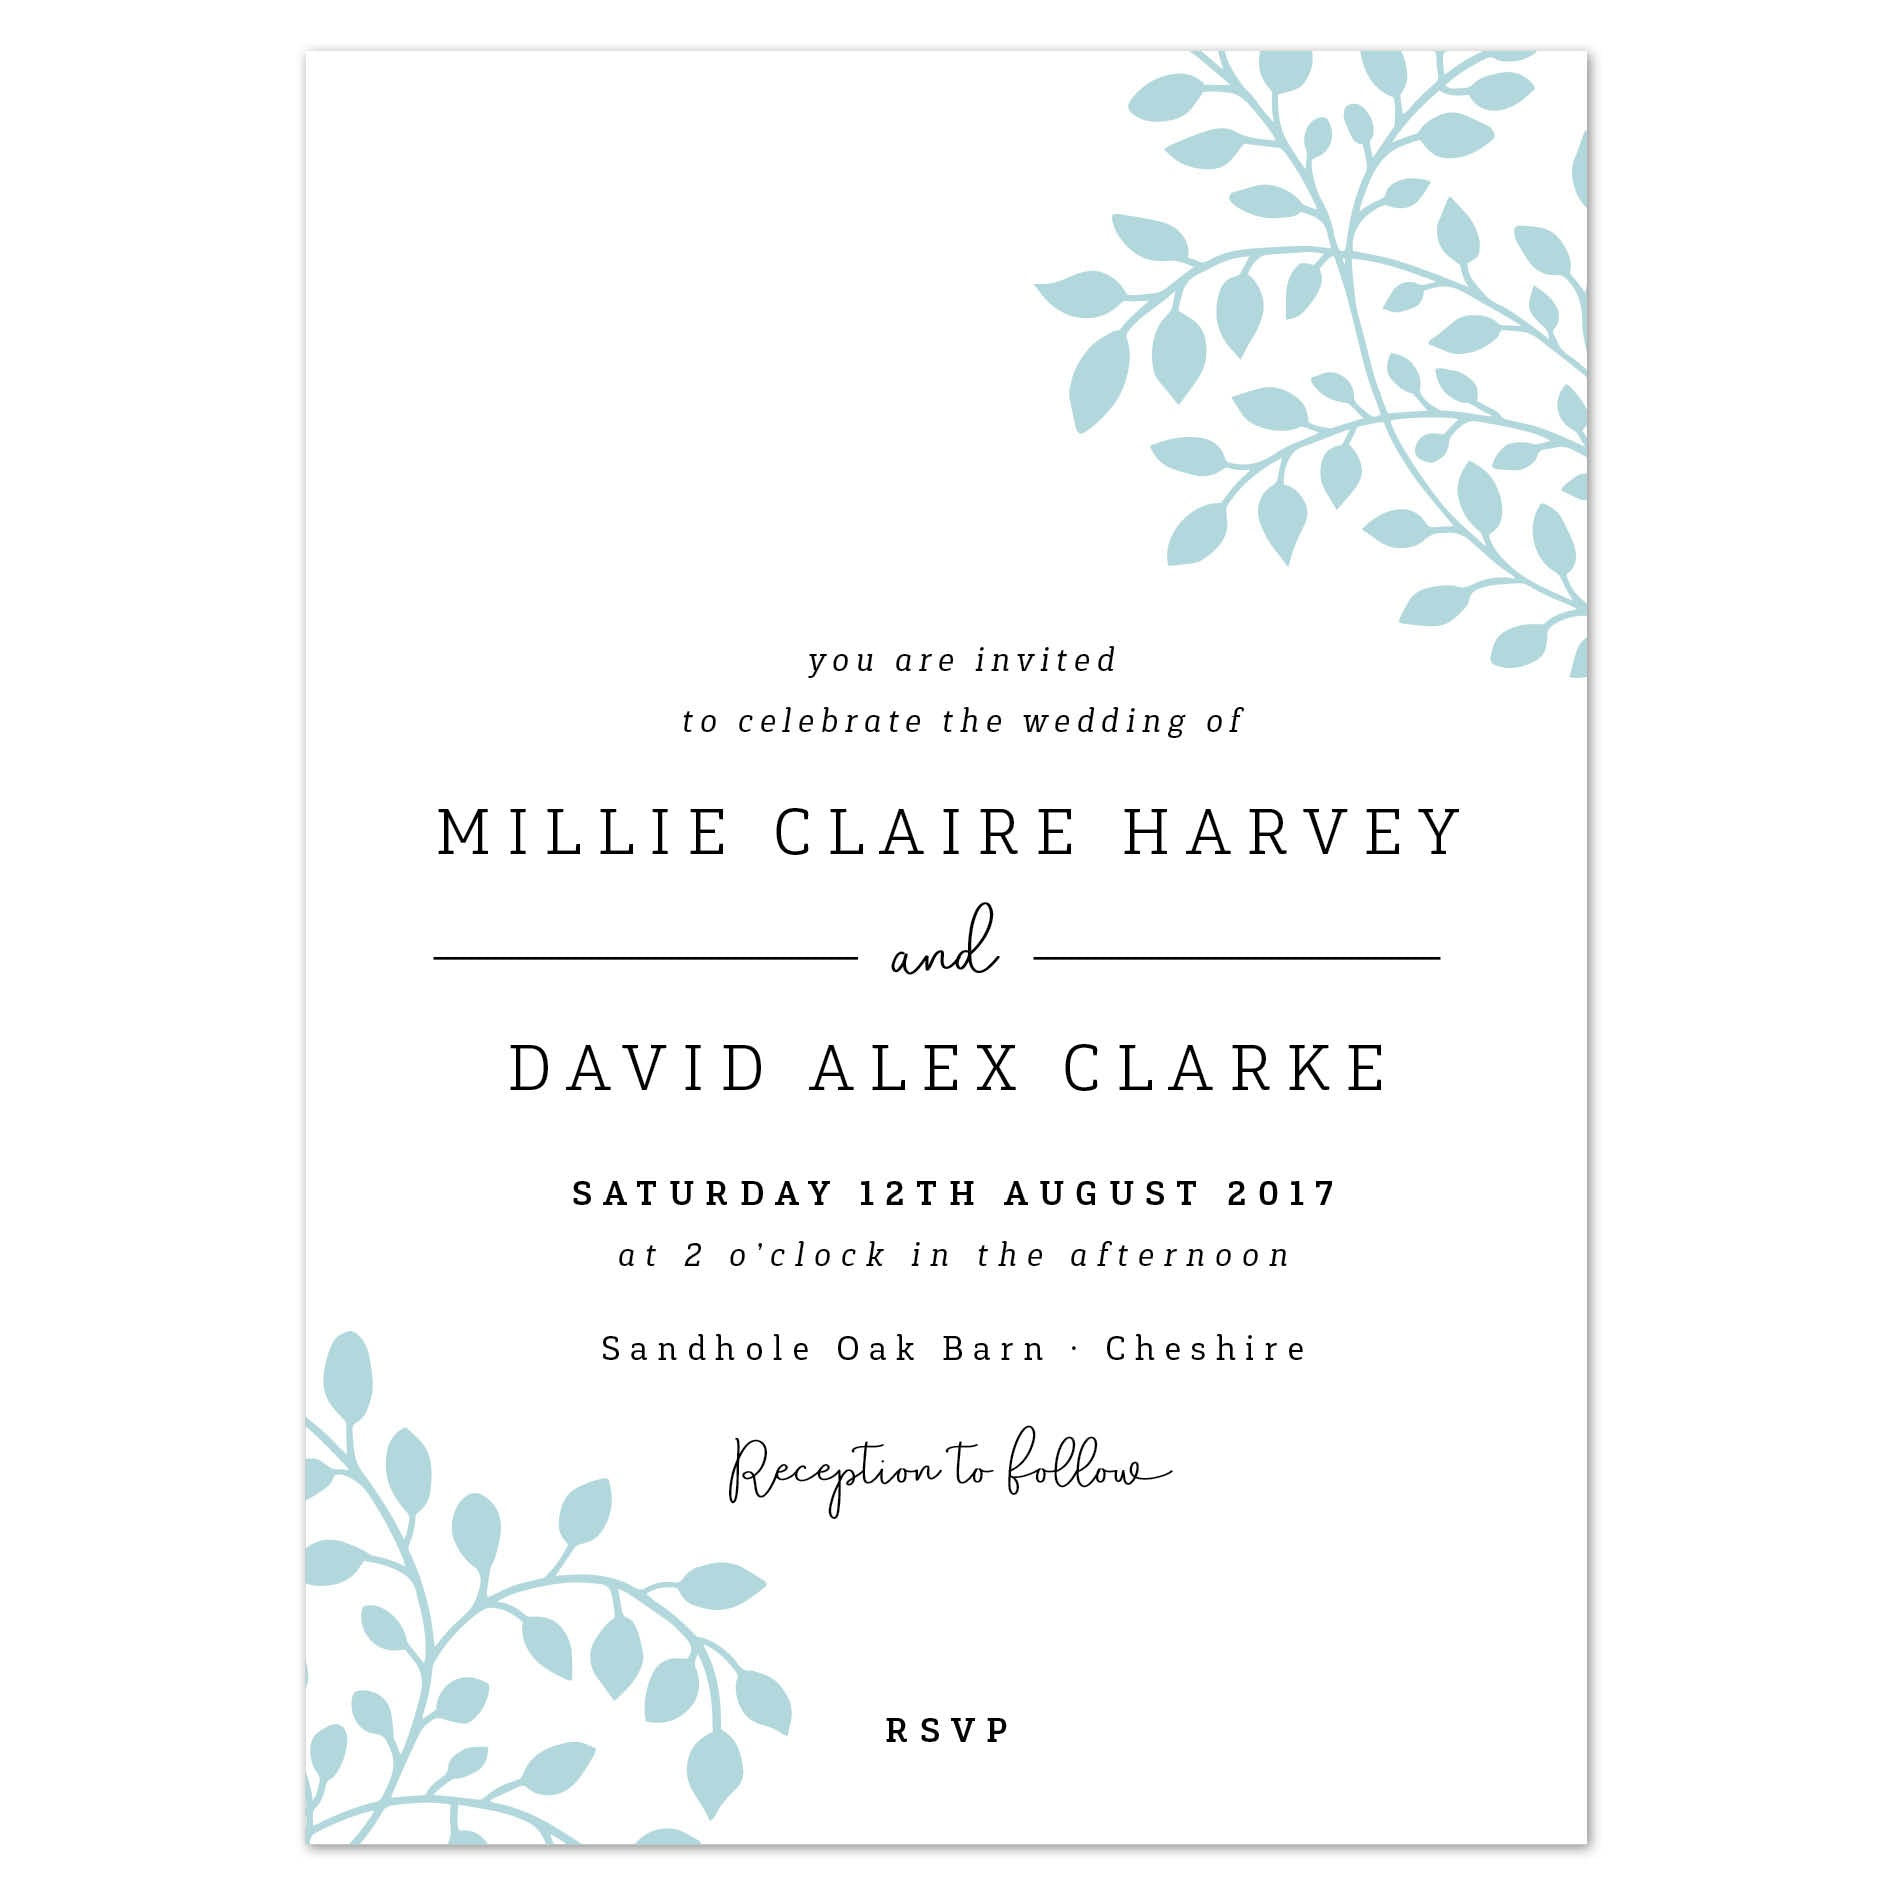 Alice Wedding Invitation